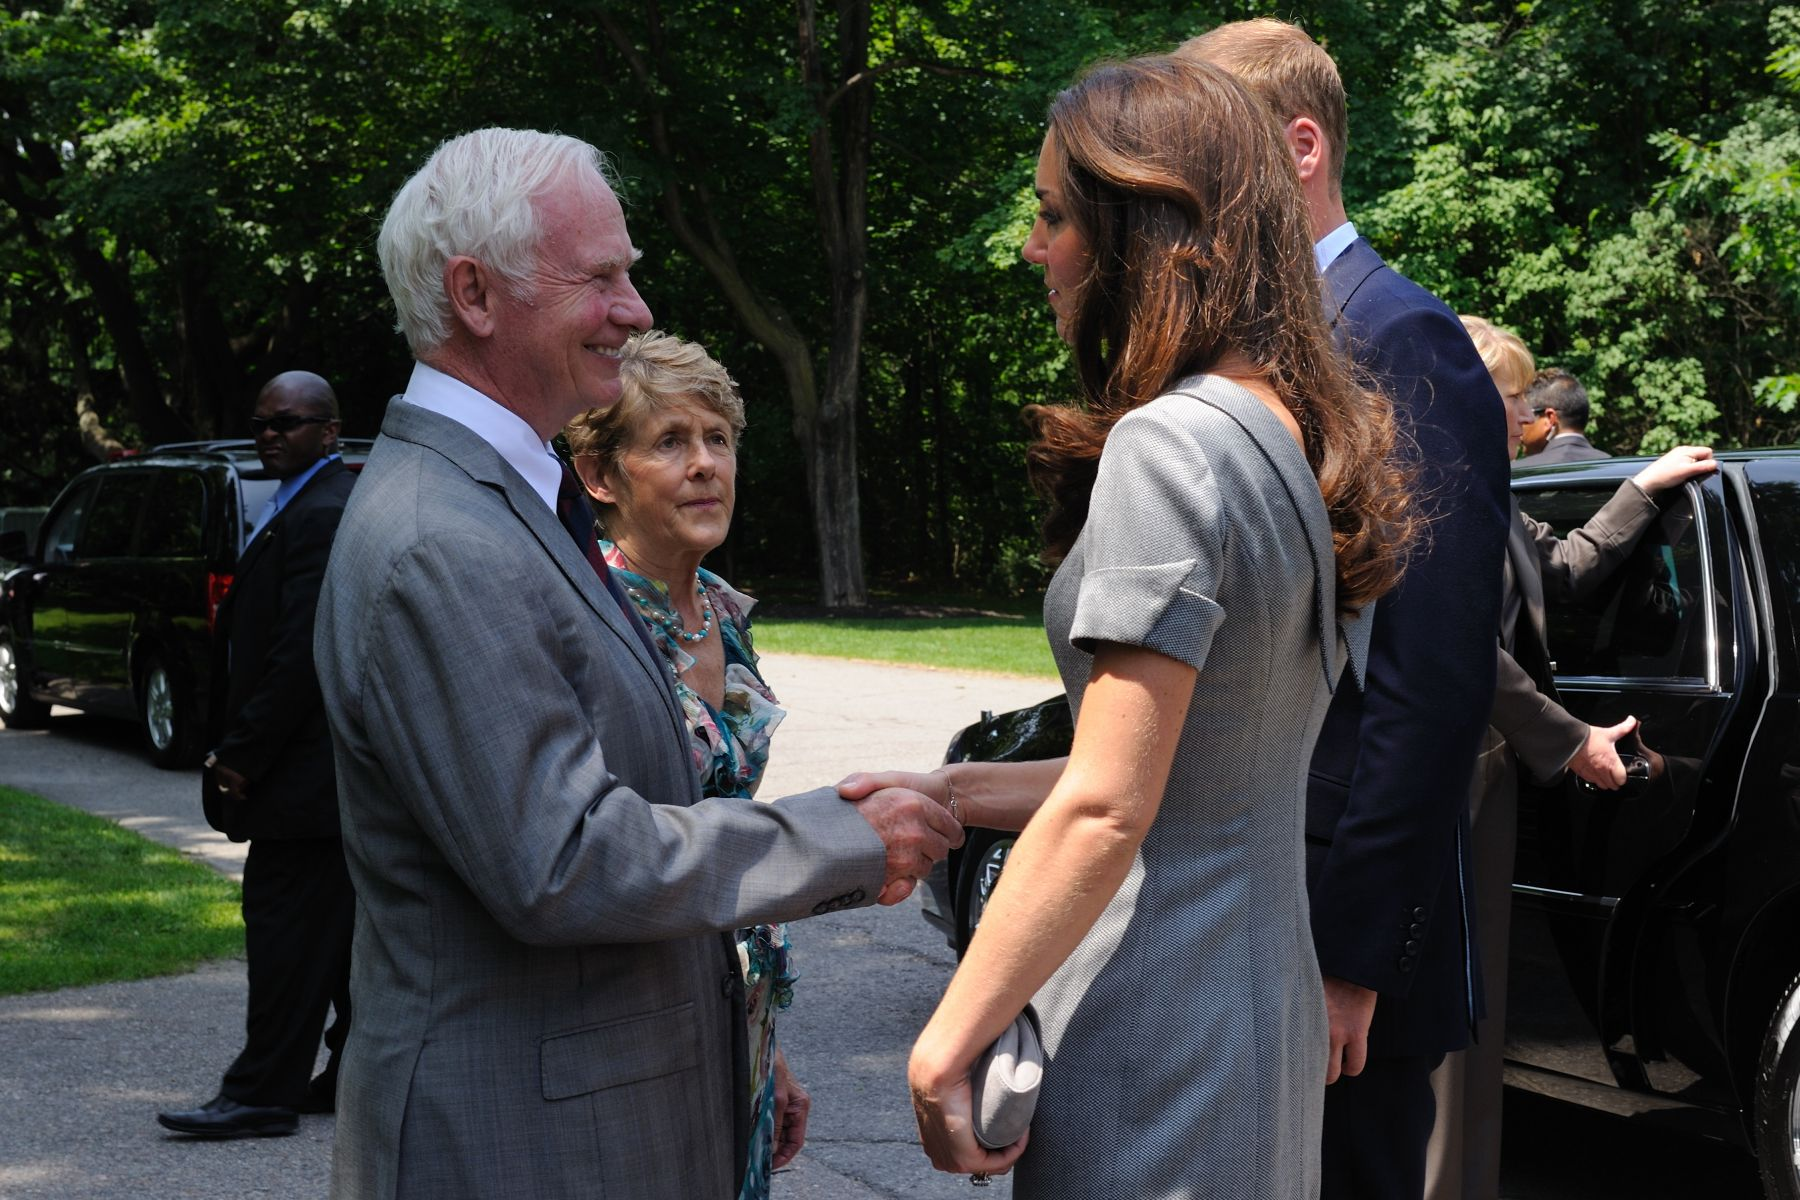 After the ceremony, Their Excellencies said goodbye to Their Royal Highnesses and wished them well on their Royal Tour. On July 8, 2011, Their Excellencies will travel to Calgary to bid them farewell on their official departure from Canada.